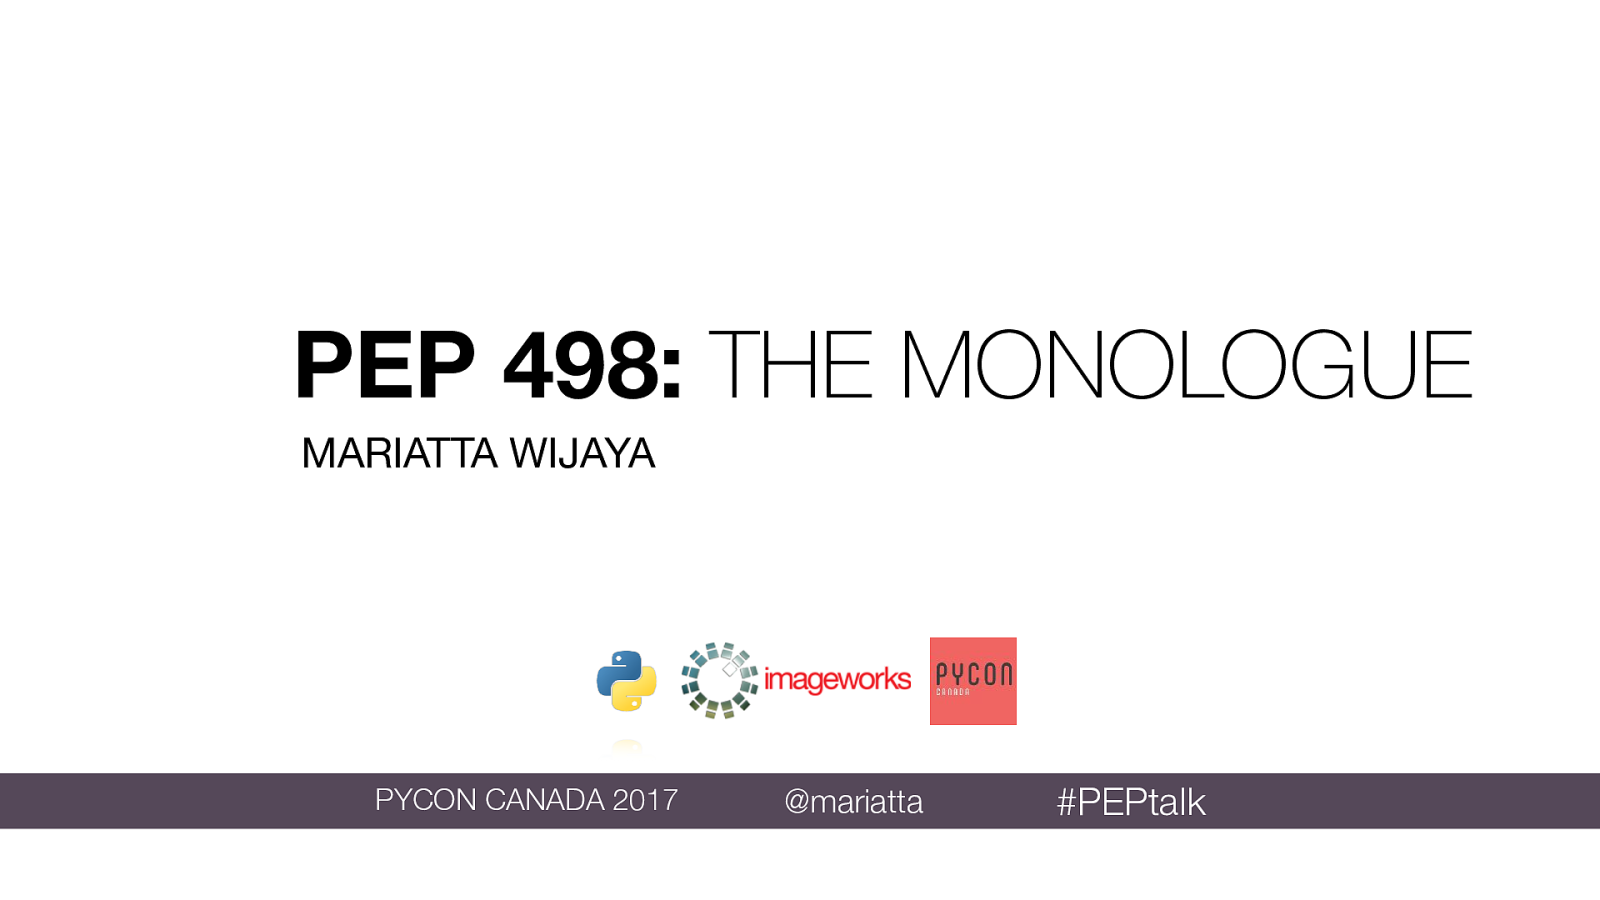 PEP 498: The Monologue